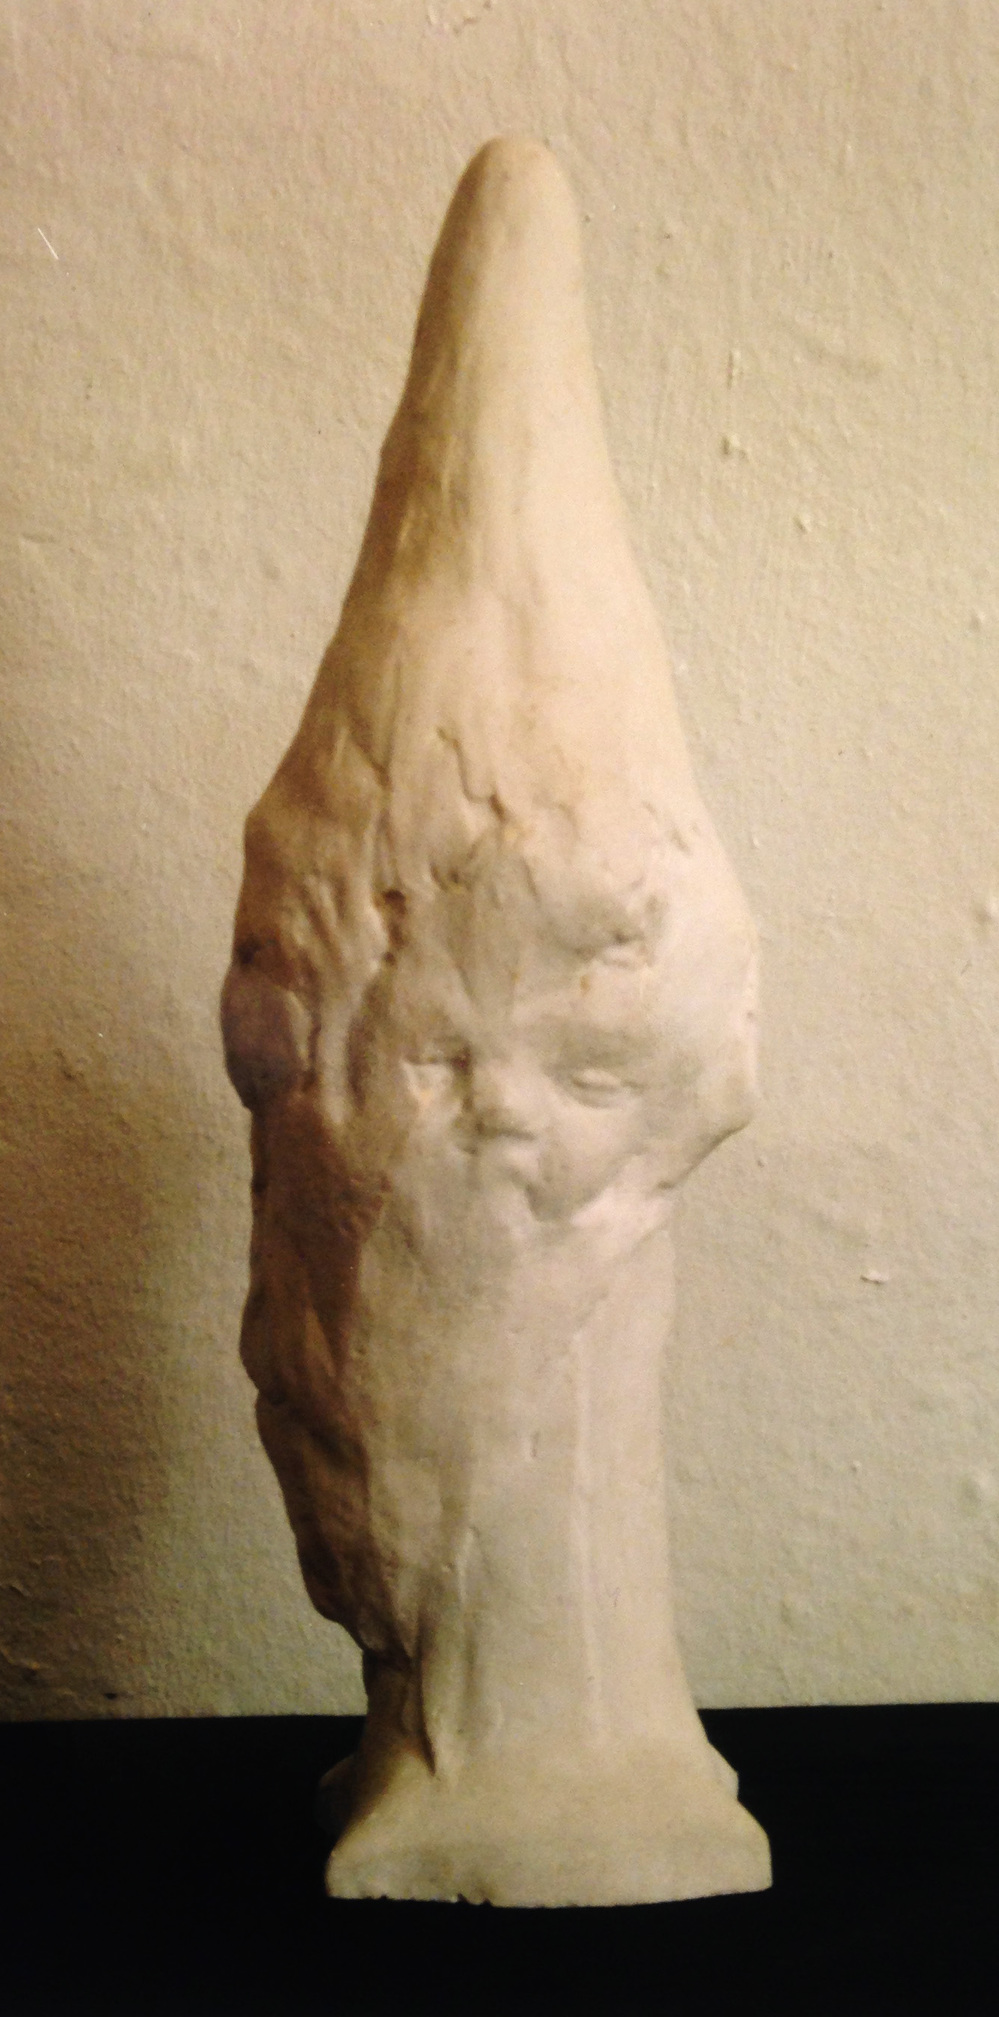 For Your Pleasure -1993 Little Boy (after Medaro Rosso)